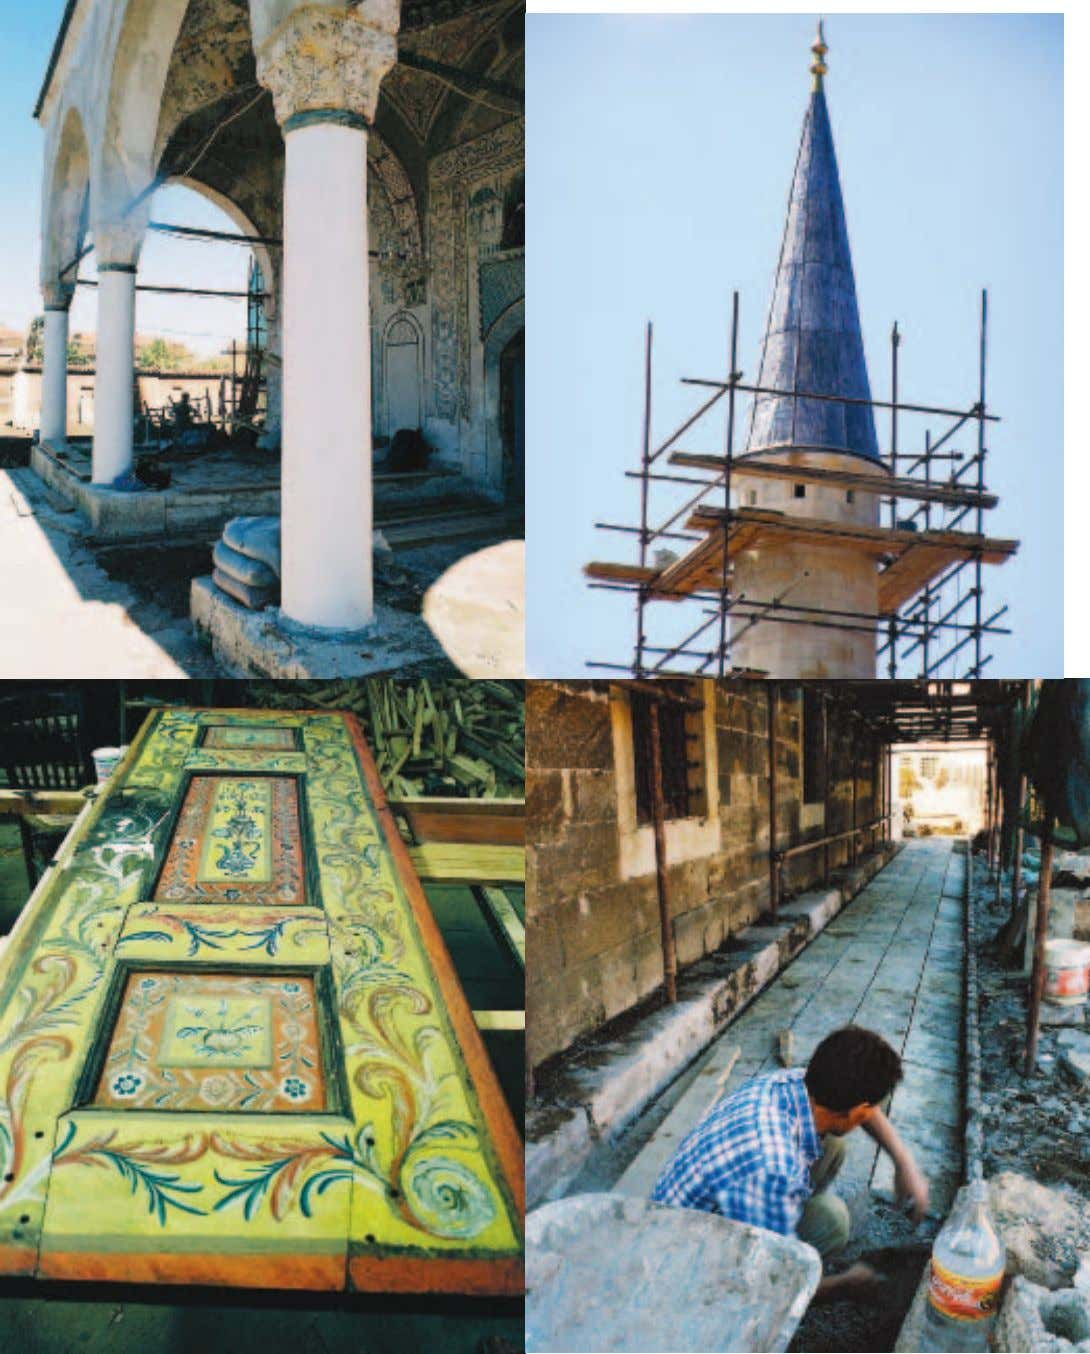 27 Cultural Heritage – Reconciliation • Reconstruction • Hopes for the Future